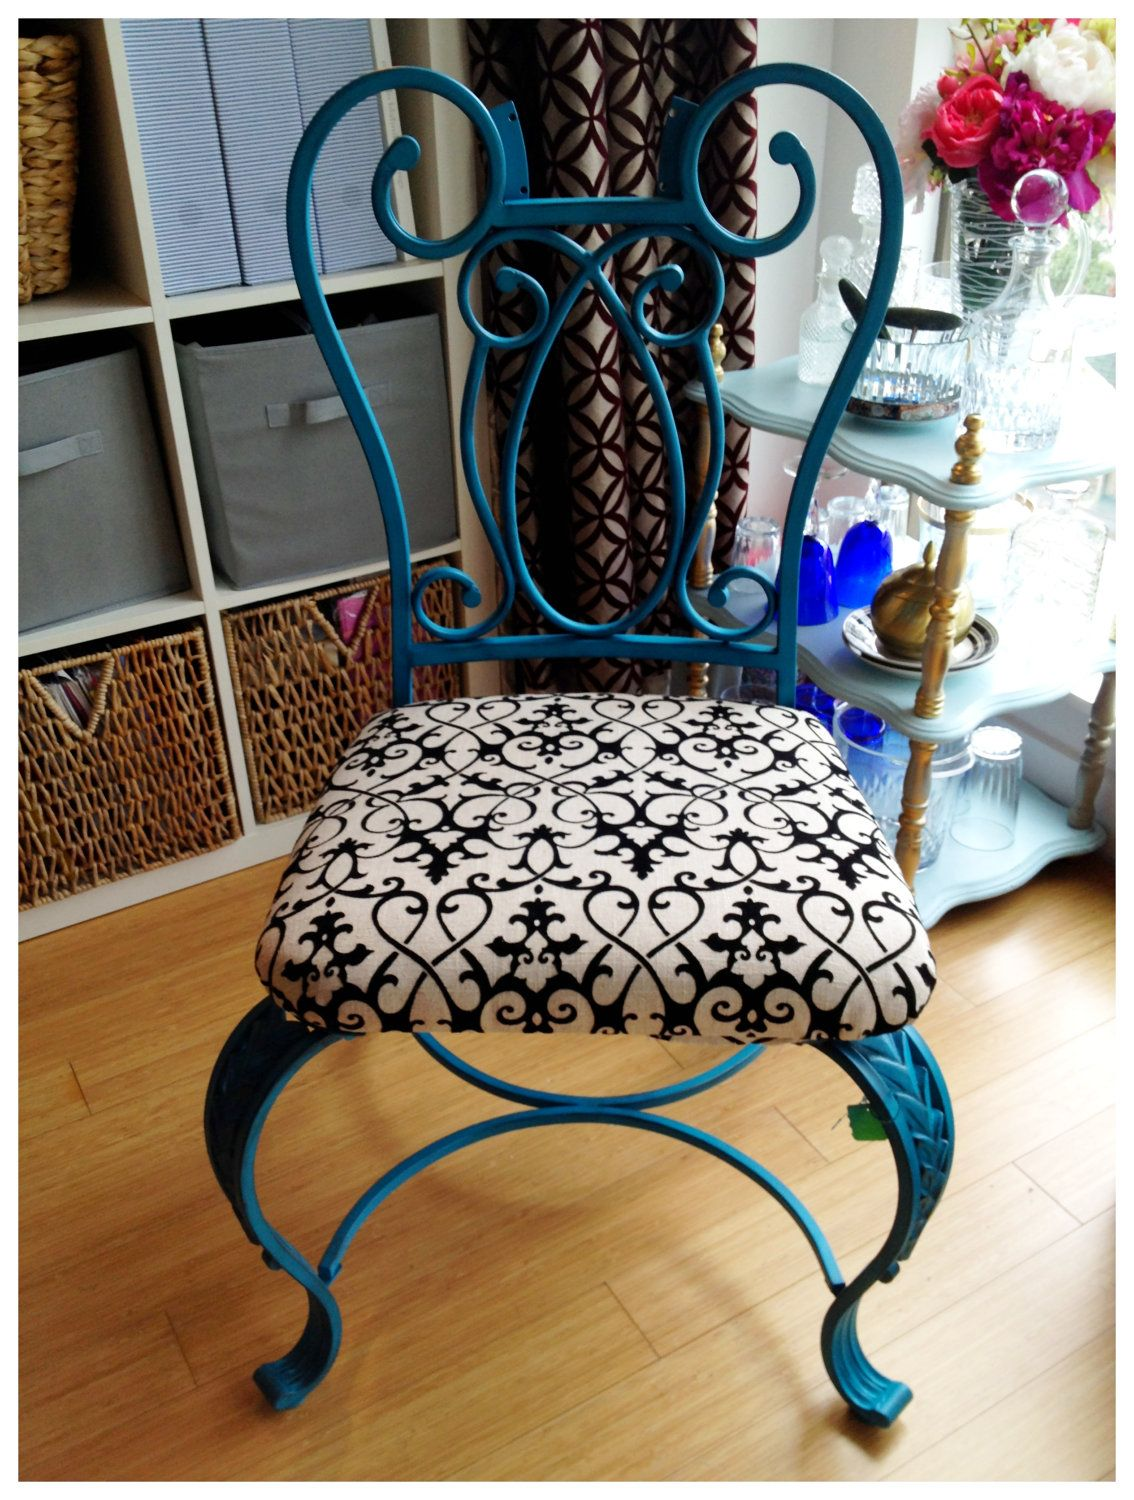 Upcycling Wrought Iron Chairs For A Modern Interior Presence With